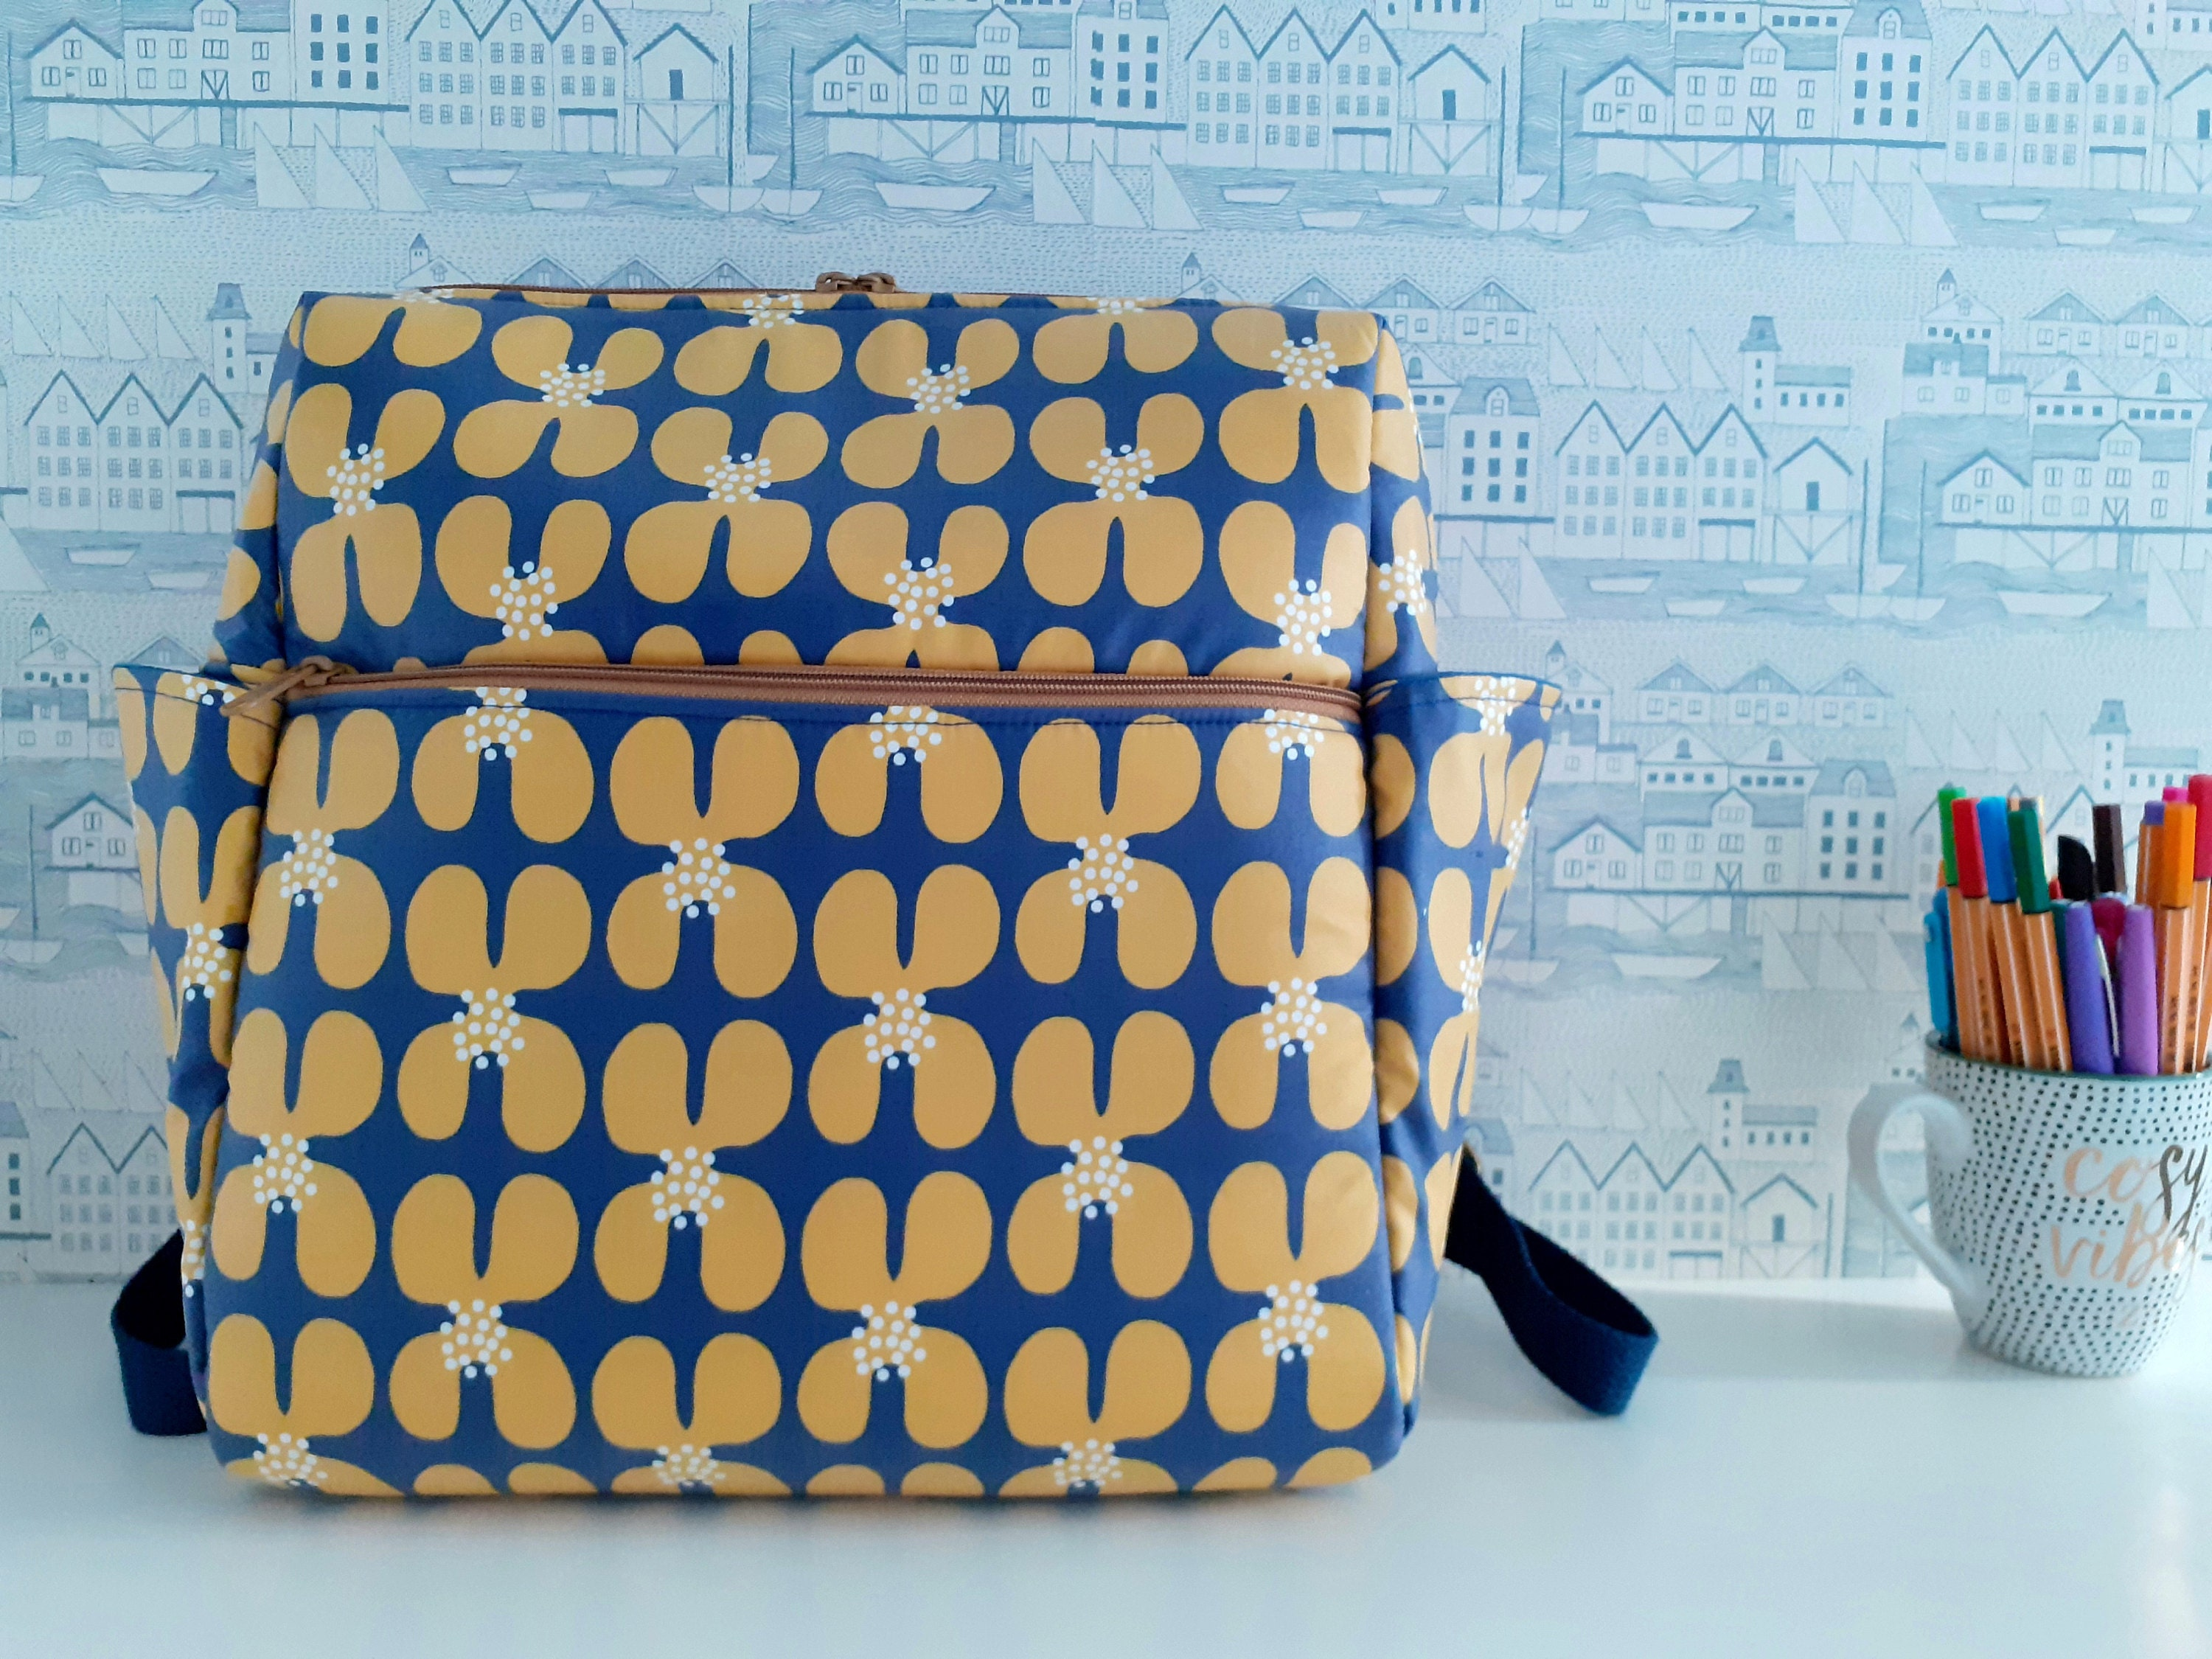 Fun Bobby Backpack Sincerely Jen Patterns Cloud 9 matte laminates Golden Poppies